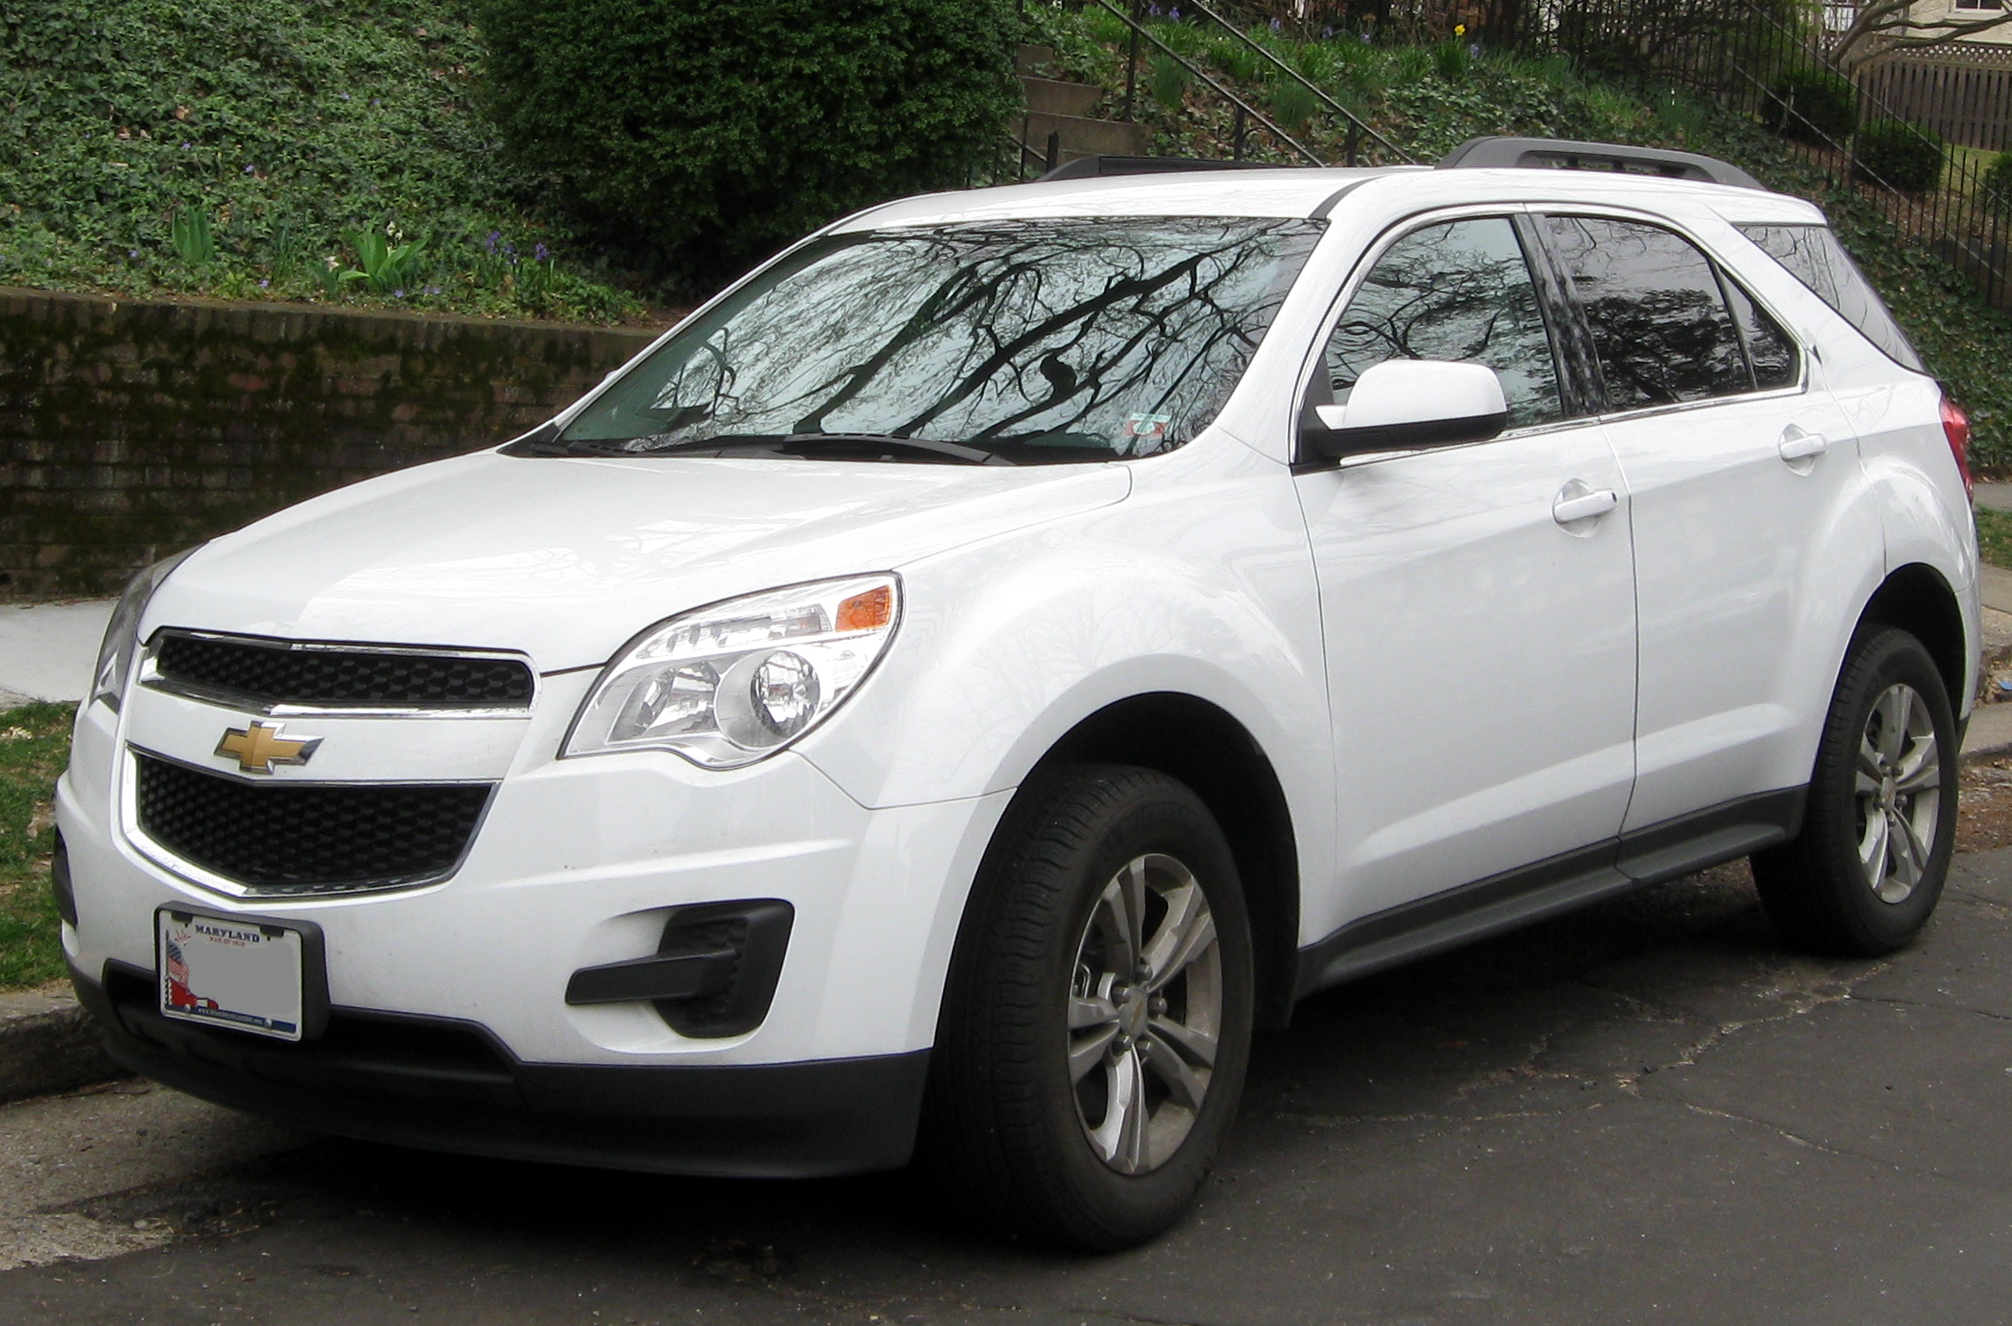 Pictures of chevrolet equinox #4